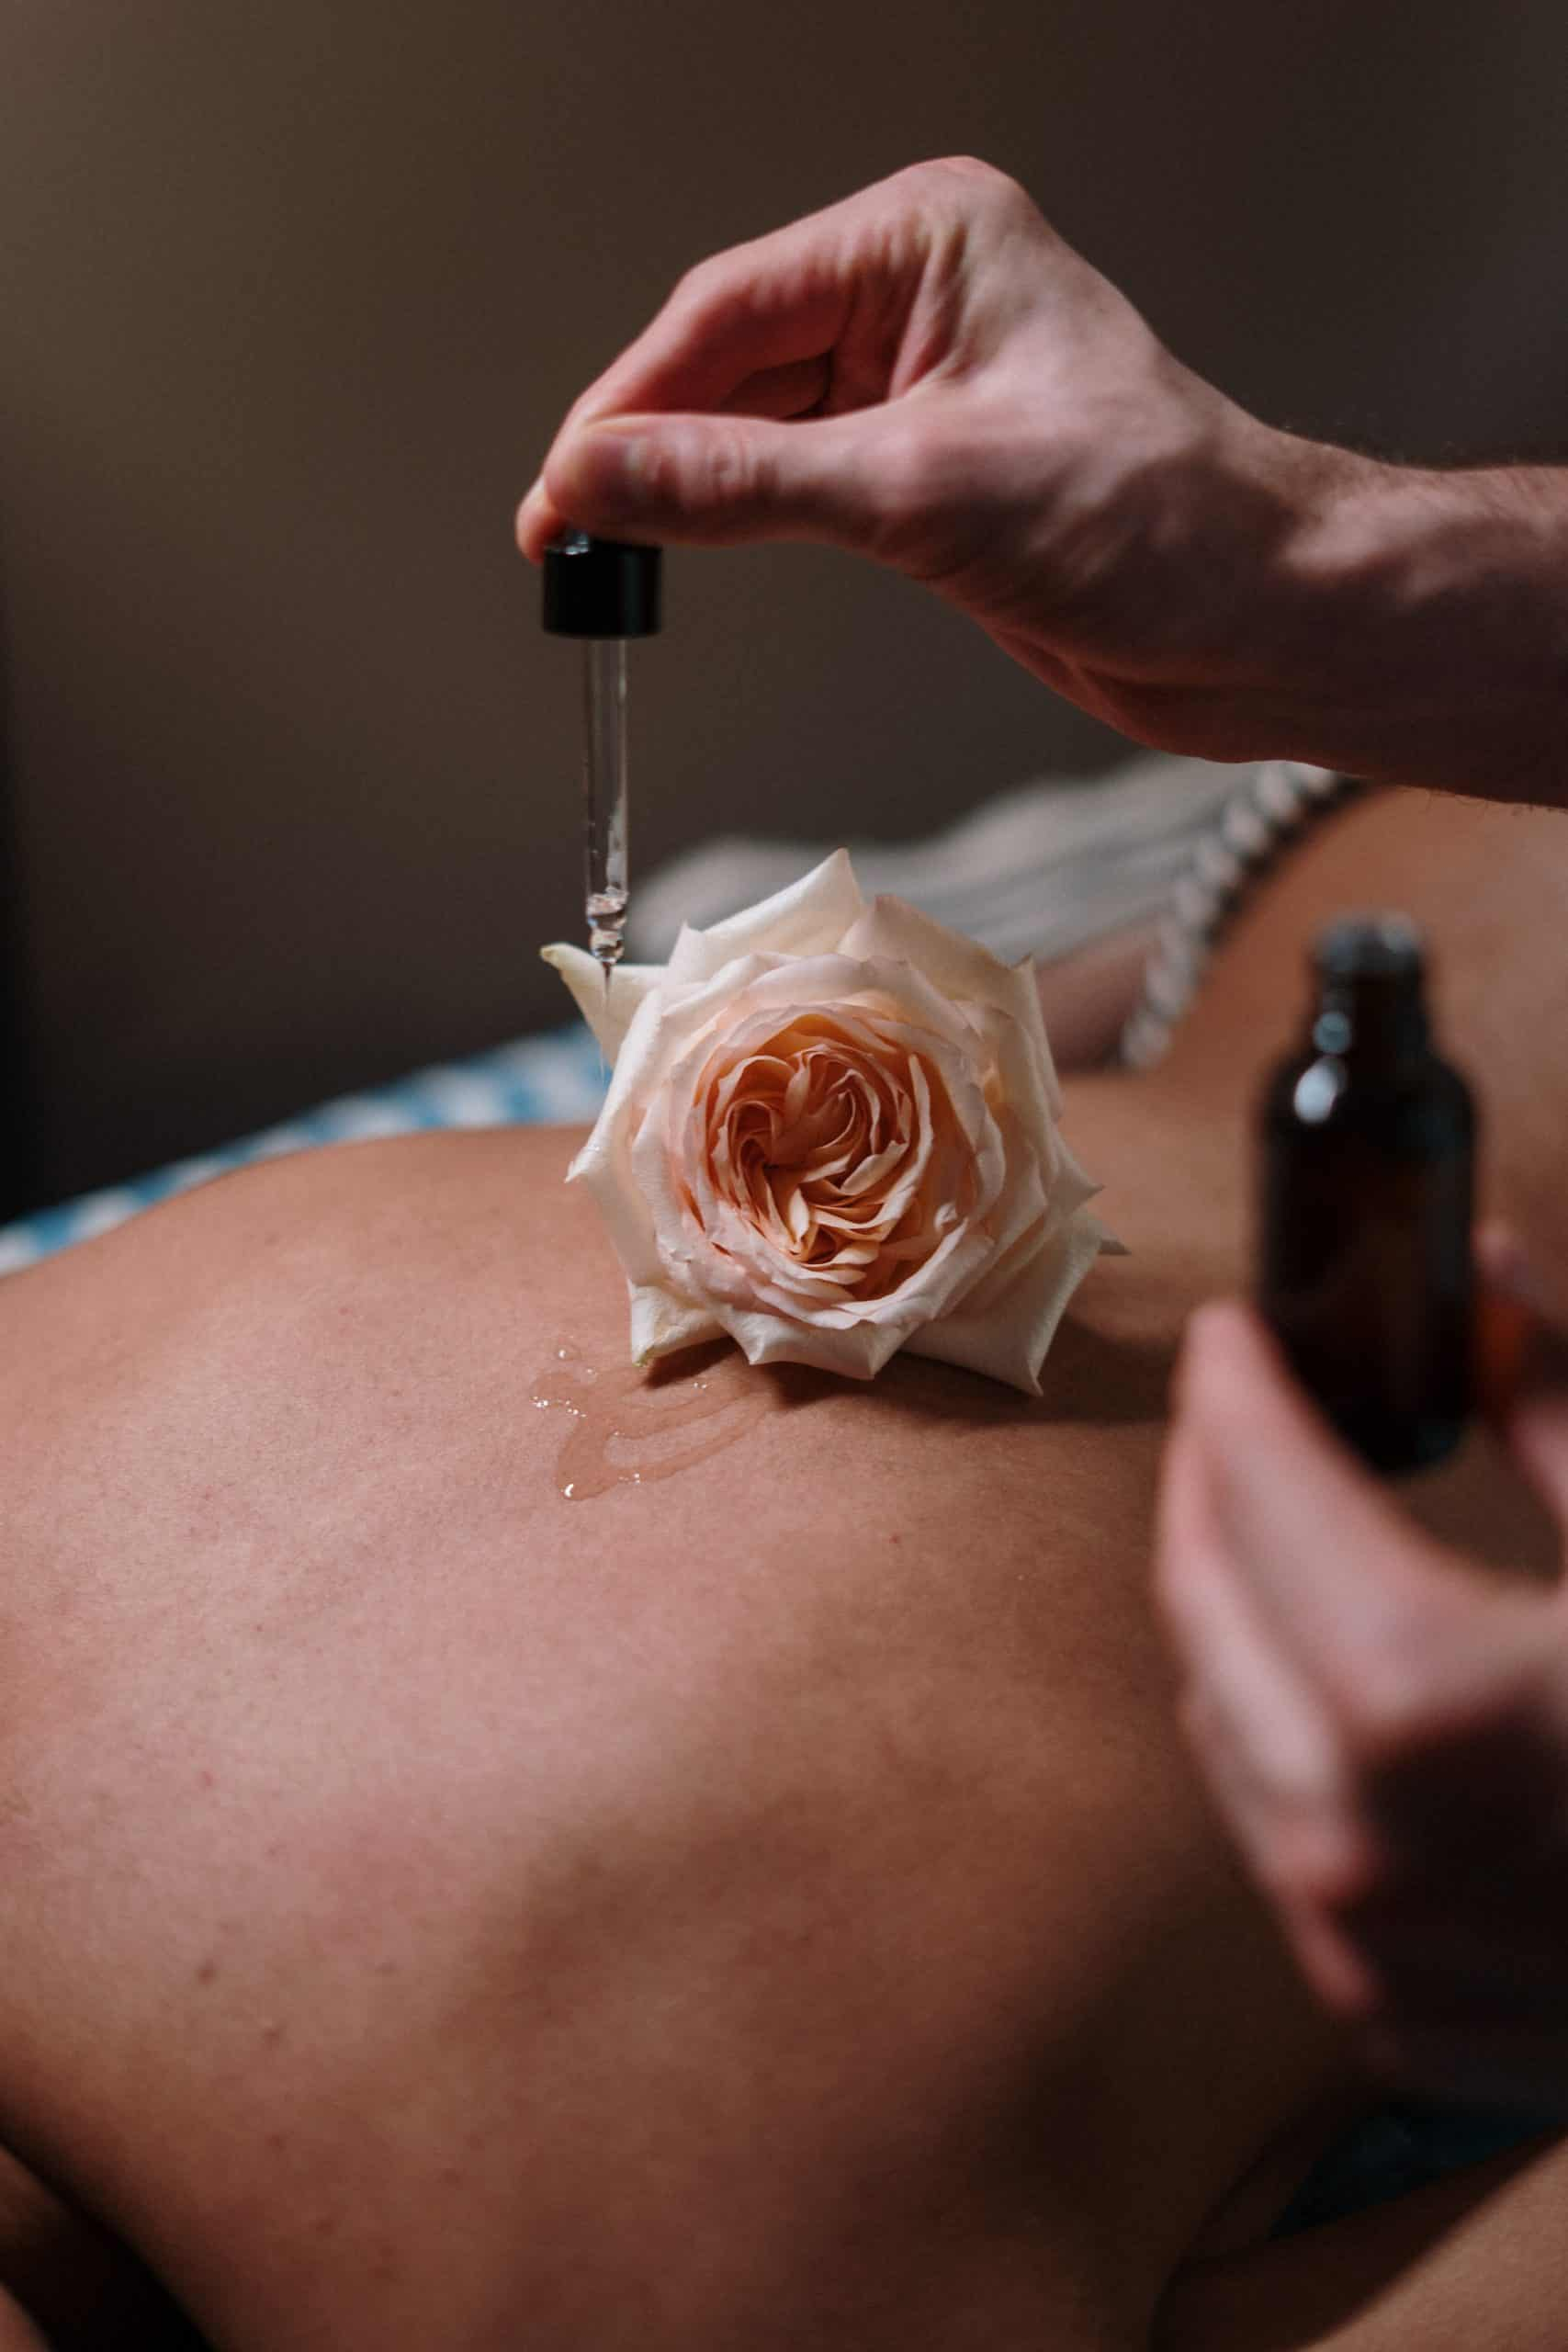 rose placed on the back whilst dropping oil onto skin